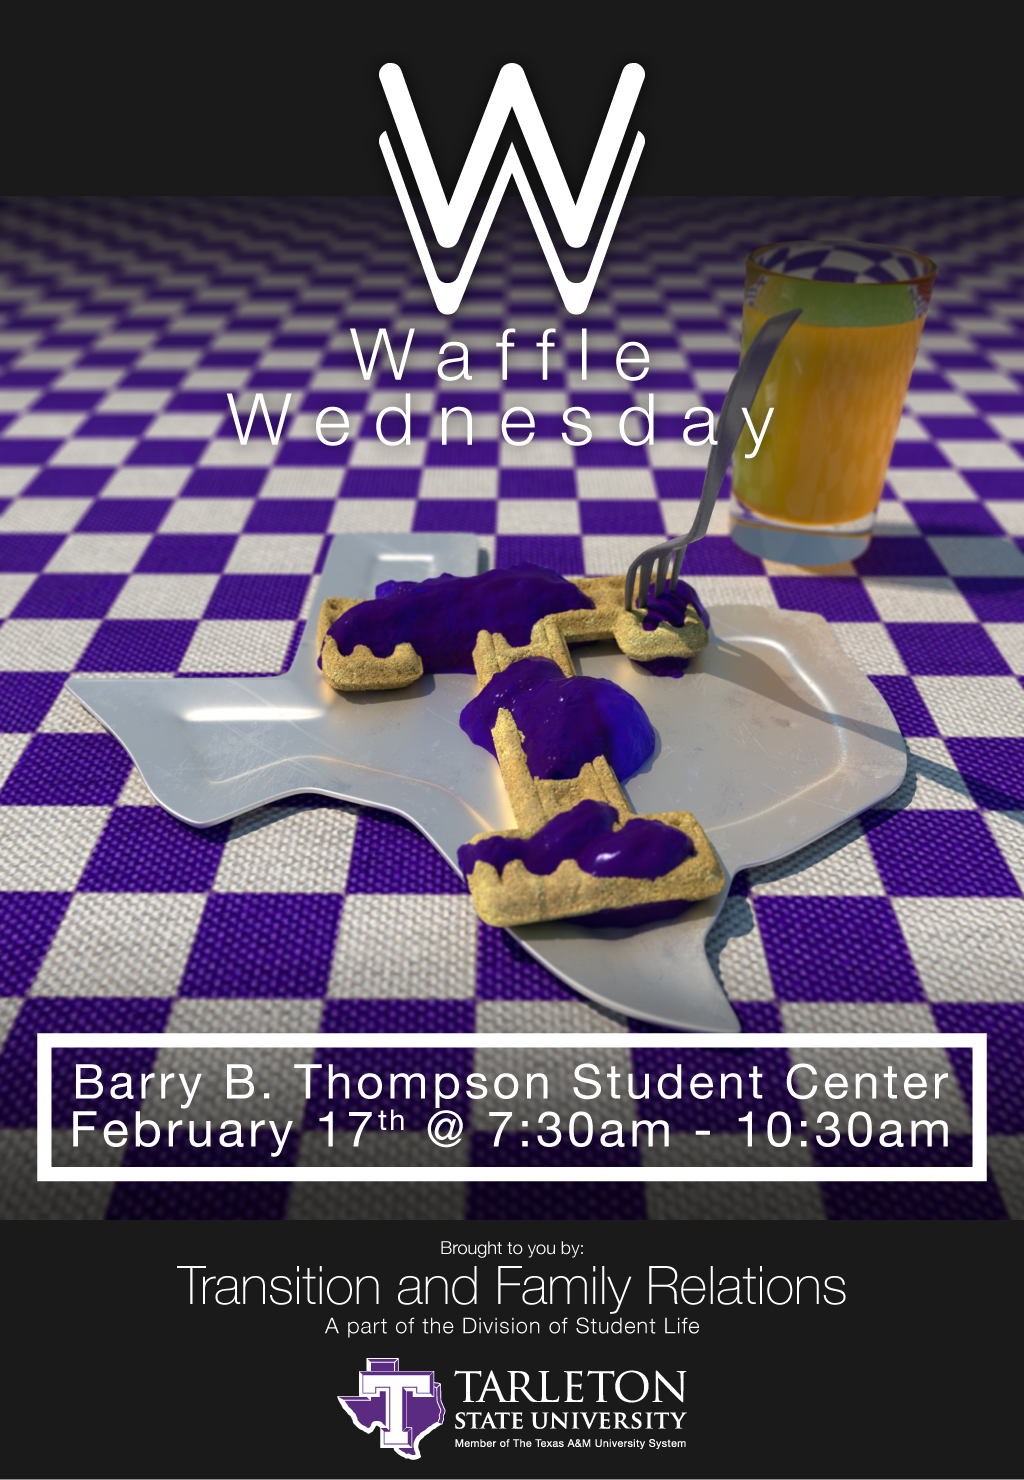 2016 Waffle Wednesday Poster — This one incorporates a logo which I though would give a clearer identity to the event. There were concerns about the event's attendance rate.  The rendered waffle image in this poster features quite a bit more objects and detail including the jelly, glass of orange juice, and more detailed textures for the plate, waffle, & table. I used 3ds Max as well as my newly acquired V-Ray renderer